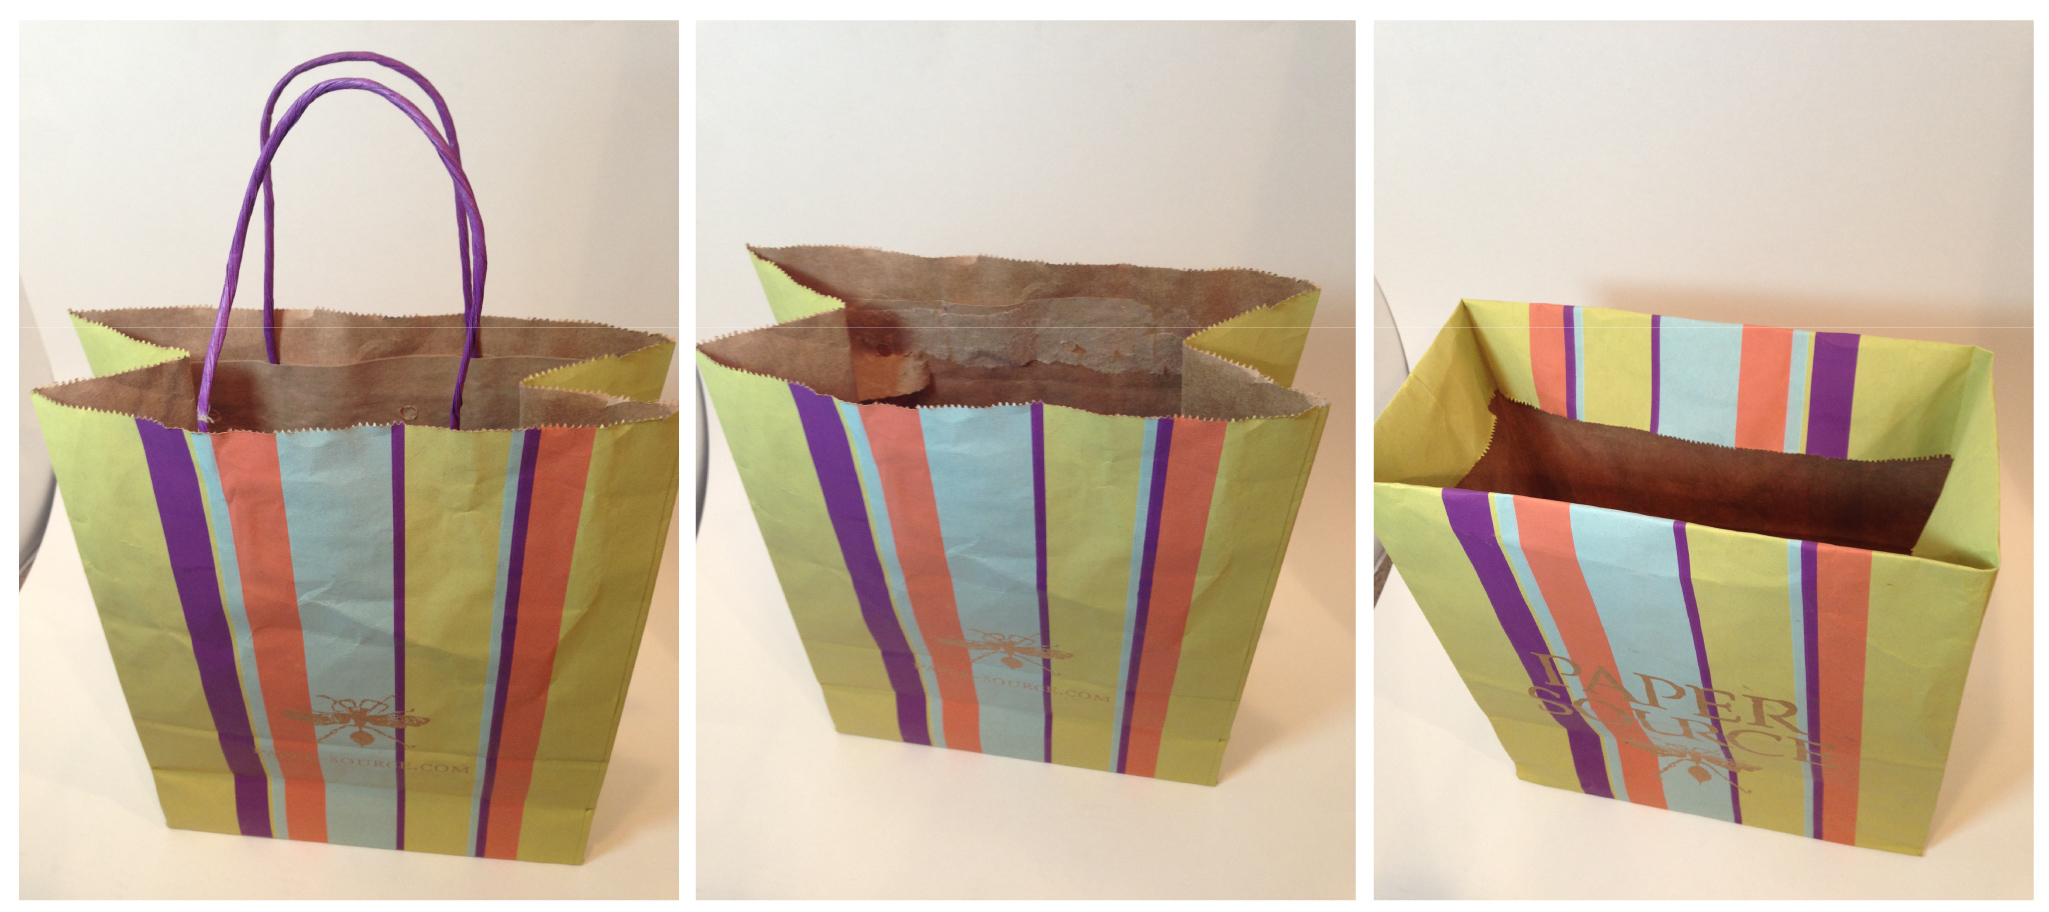 Upcycling Old Store Bags Into Cute Gift Bags Lulubell Elaine